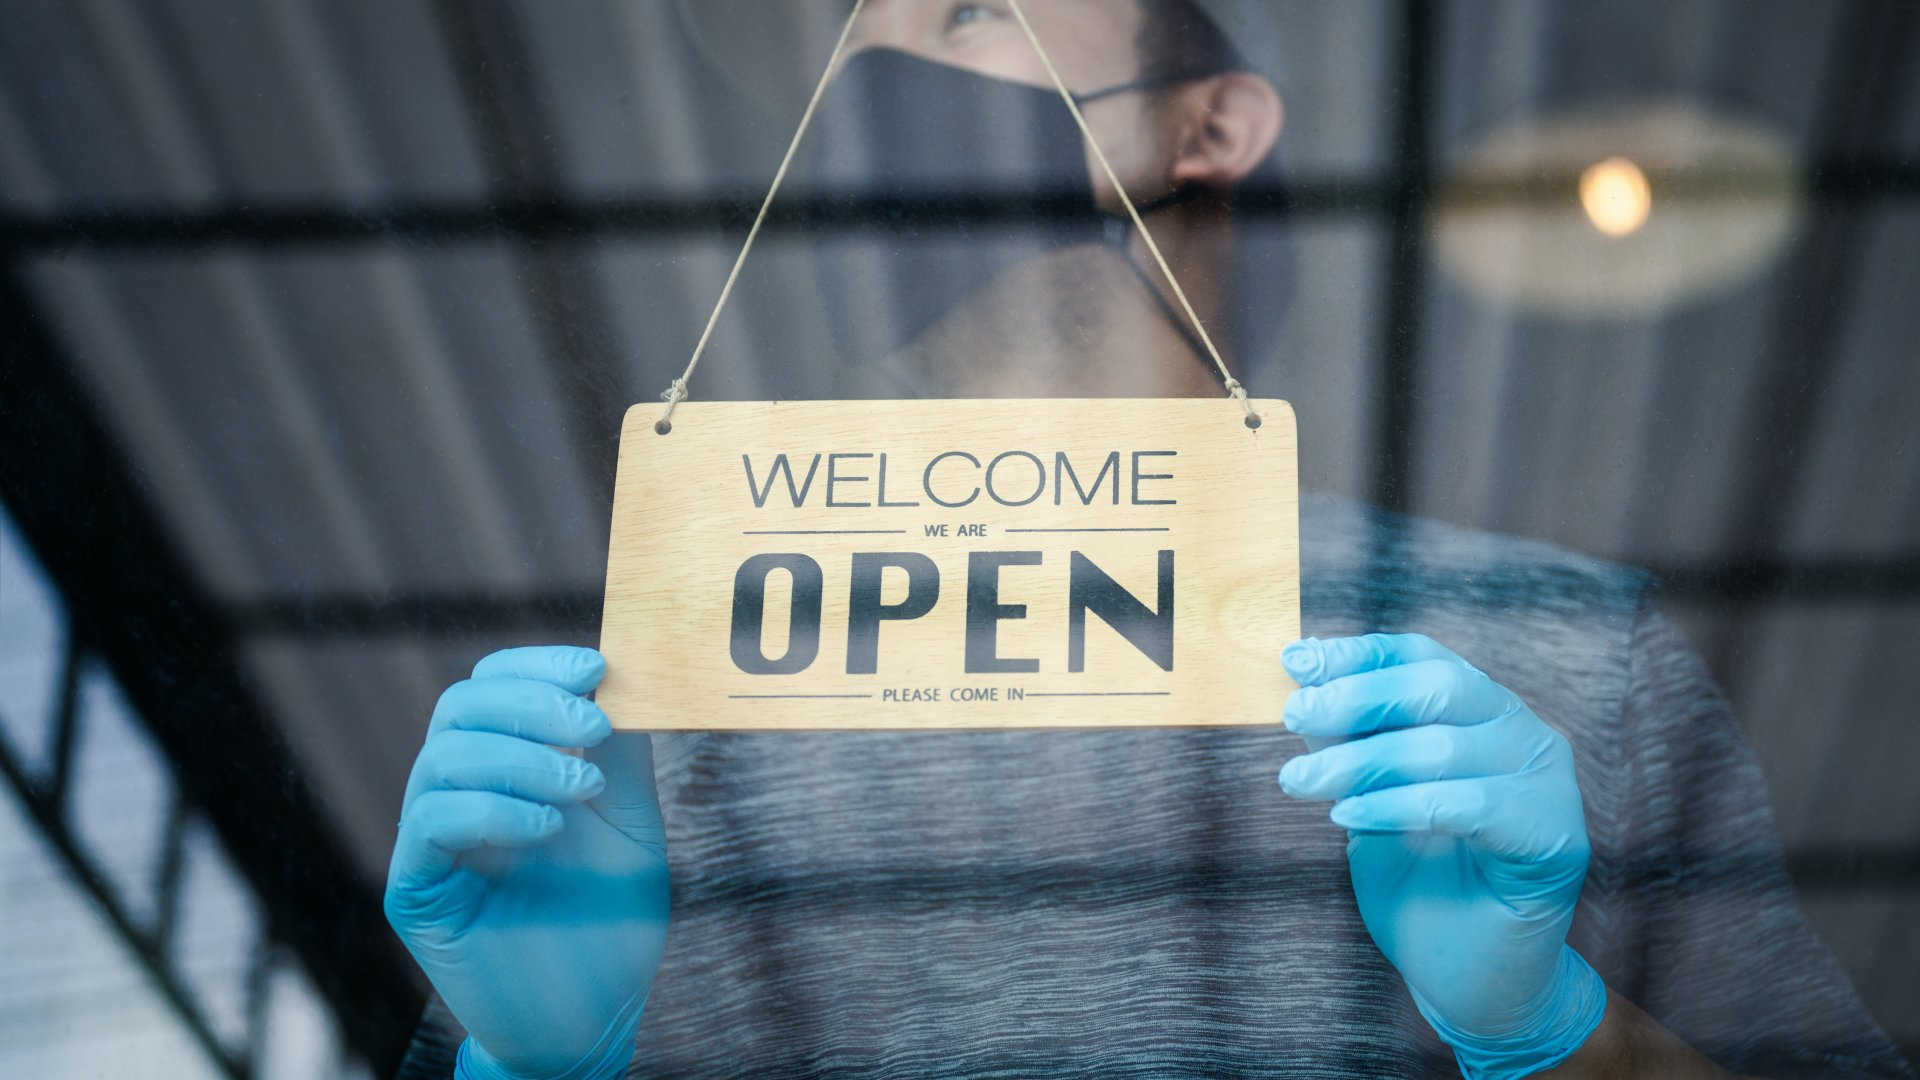 3 Ways Security Technology Is Keeping Businesses Open During Covid-19